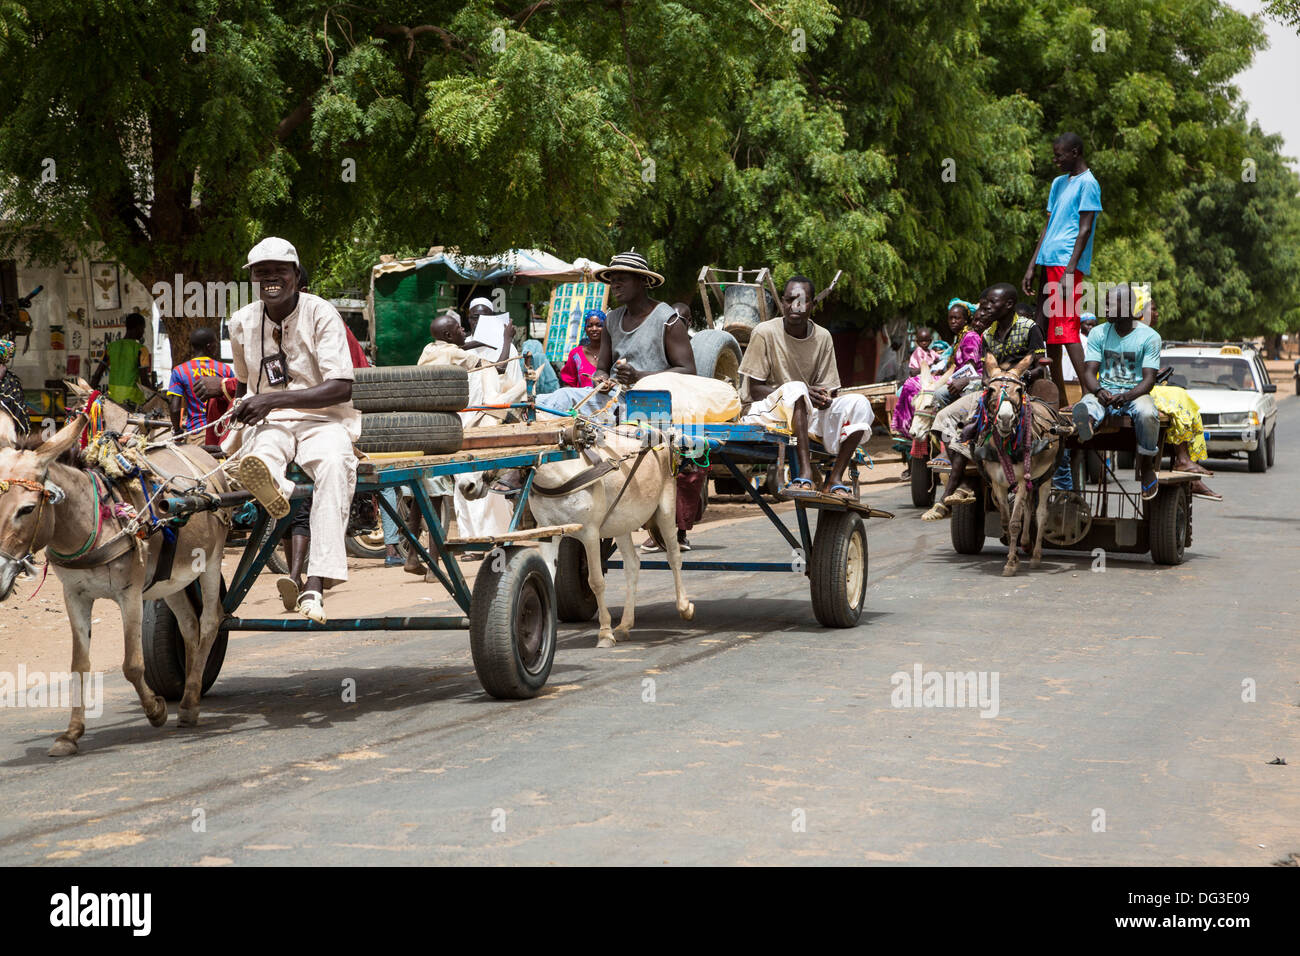 Senegal, Touba. Street Scene. Donkey-drawn Carts and a Taxi Provide Local Transport. - Stock Image